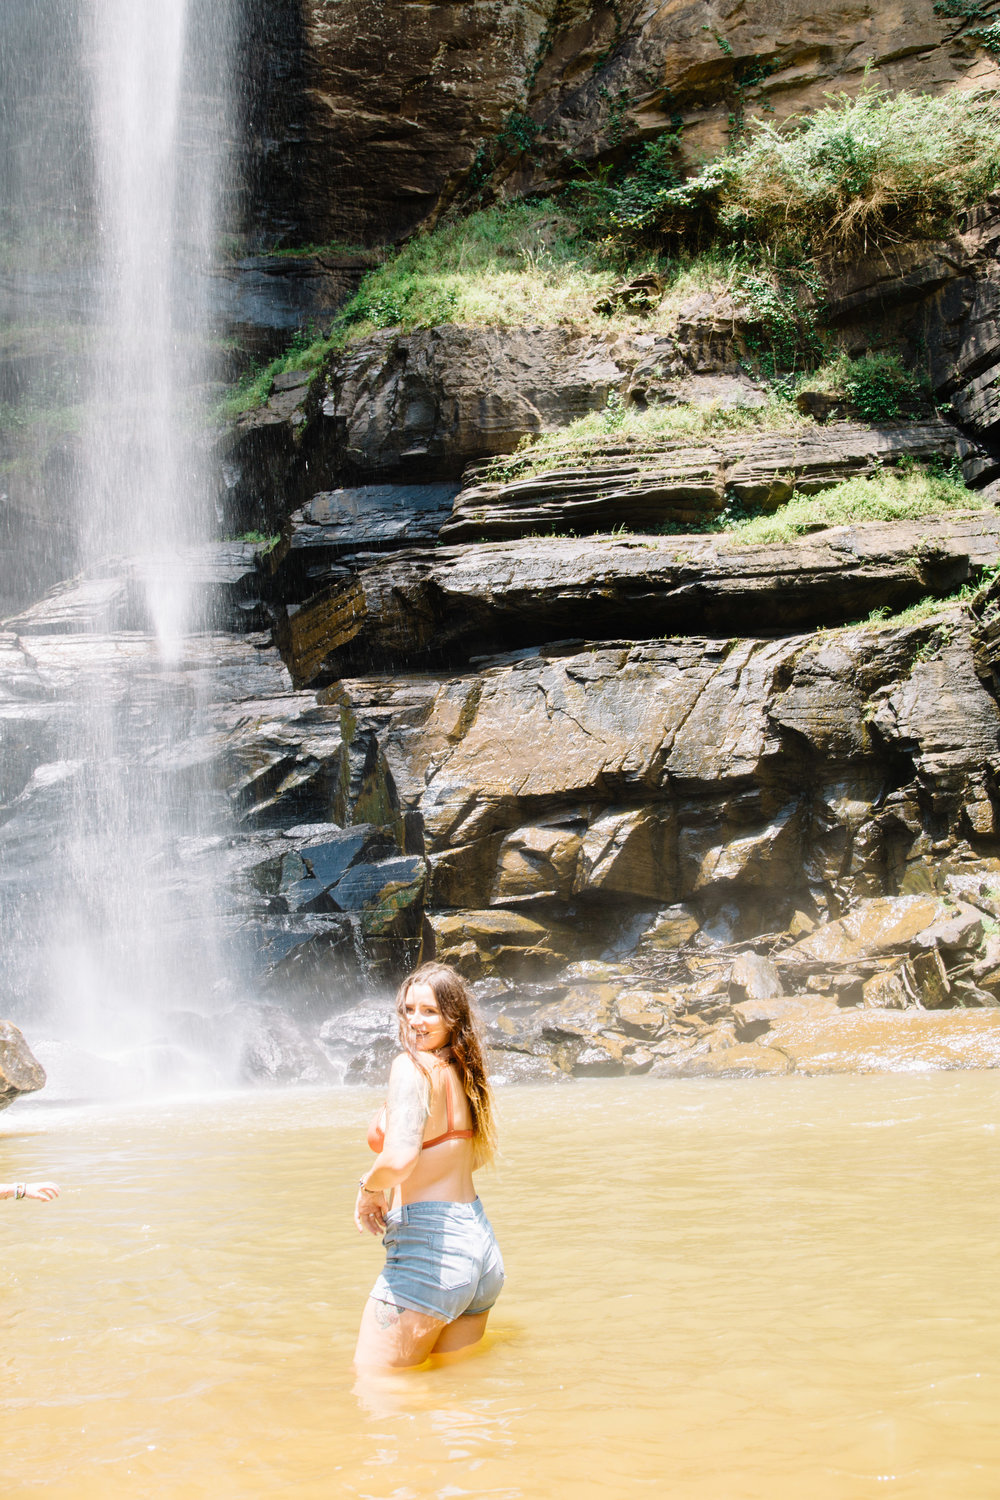 Love waterfalls? Check out this Georgia summer day guide at MoreDetours.com.